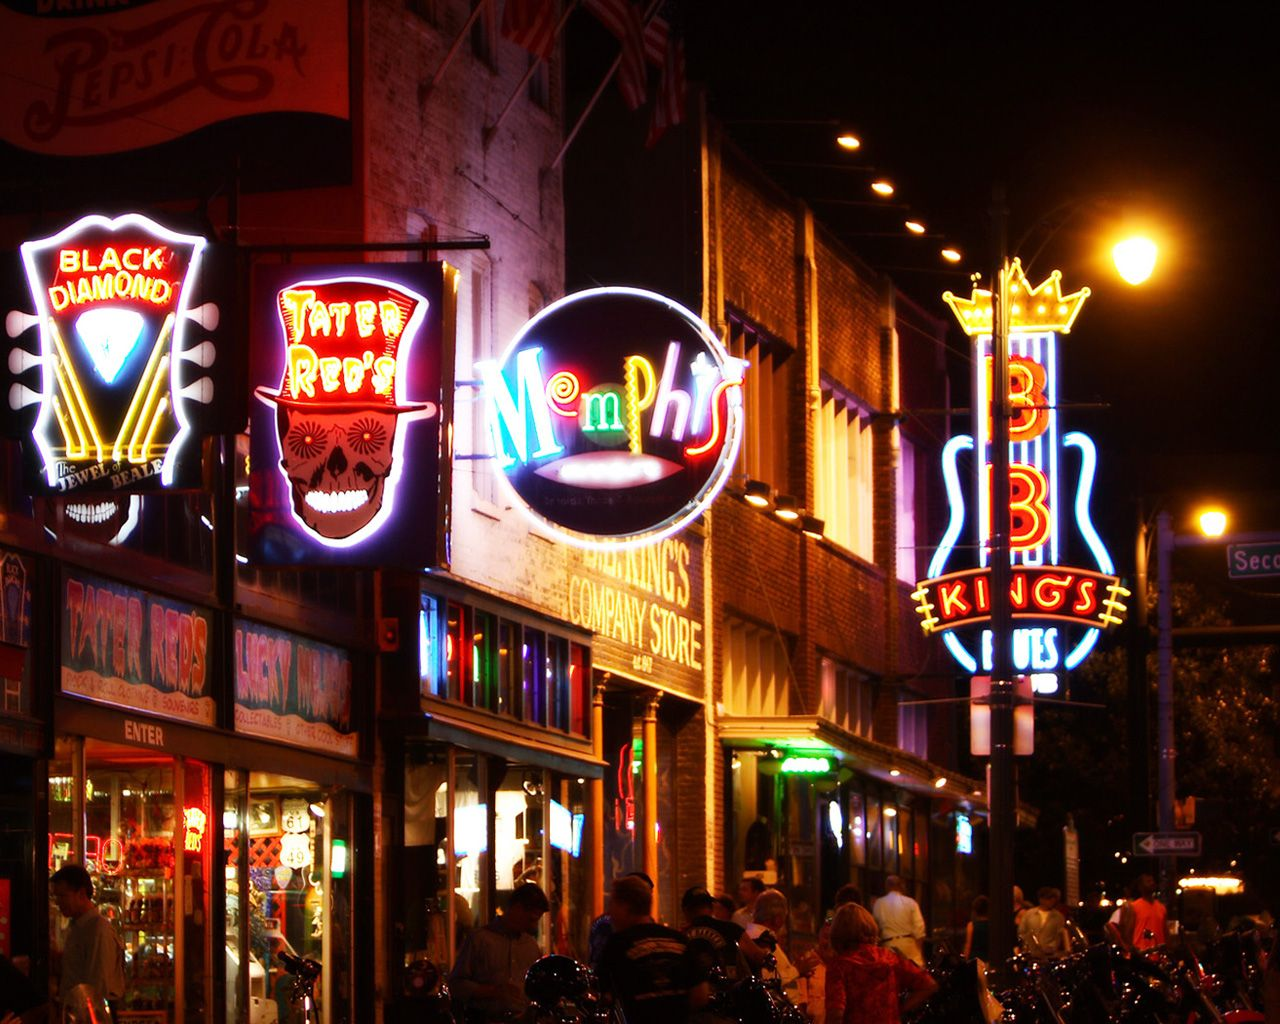 Luci a neon in Beale Street, Memphis